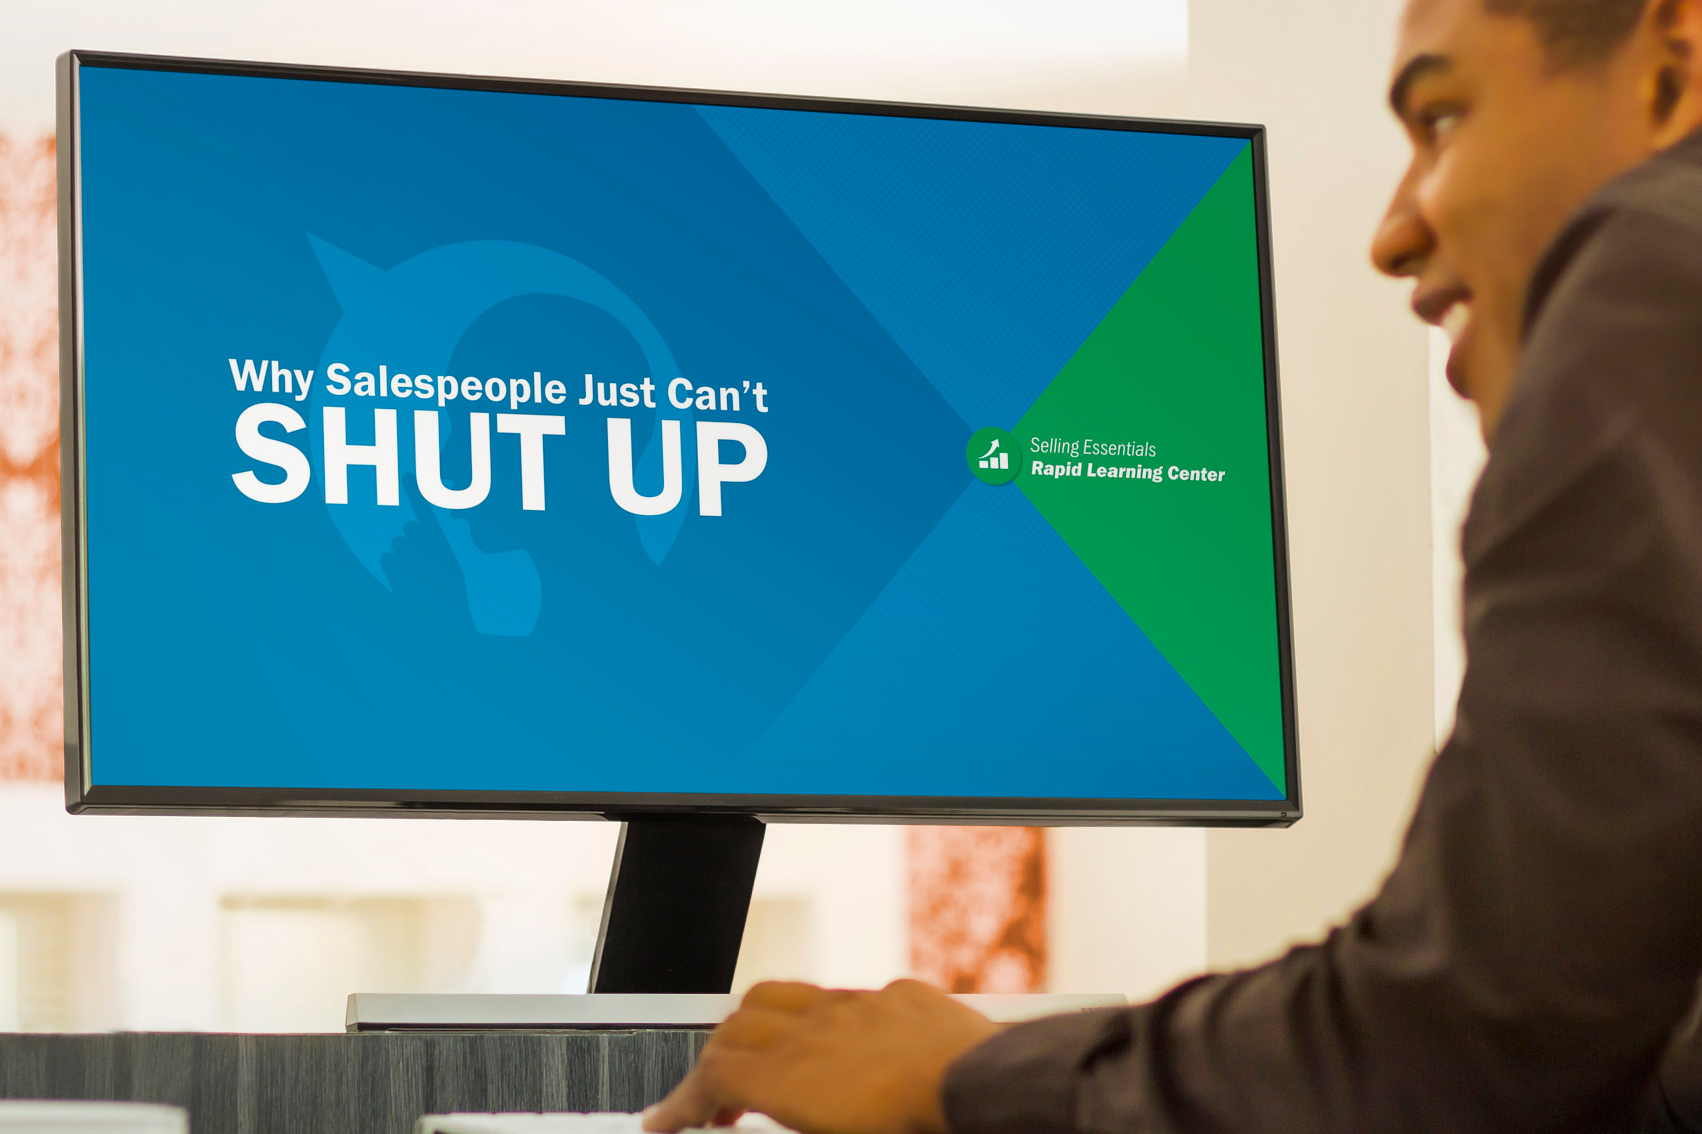 Why Salespeople Just Can't Shut Up